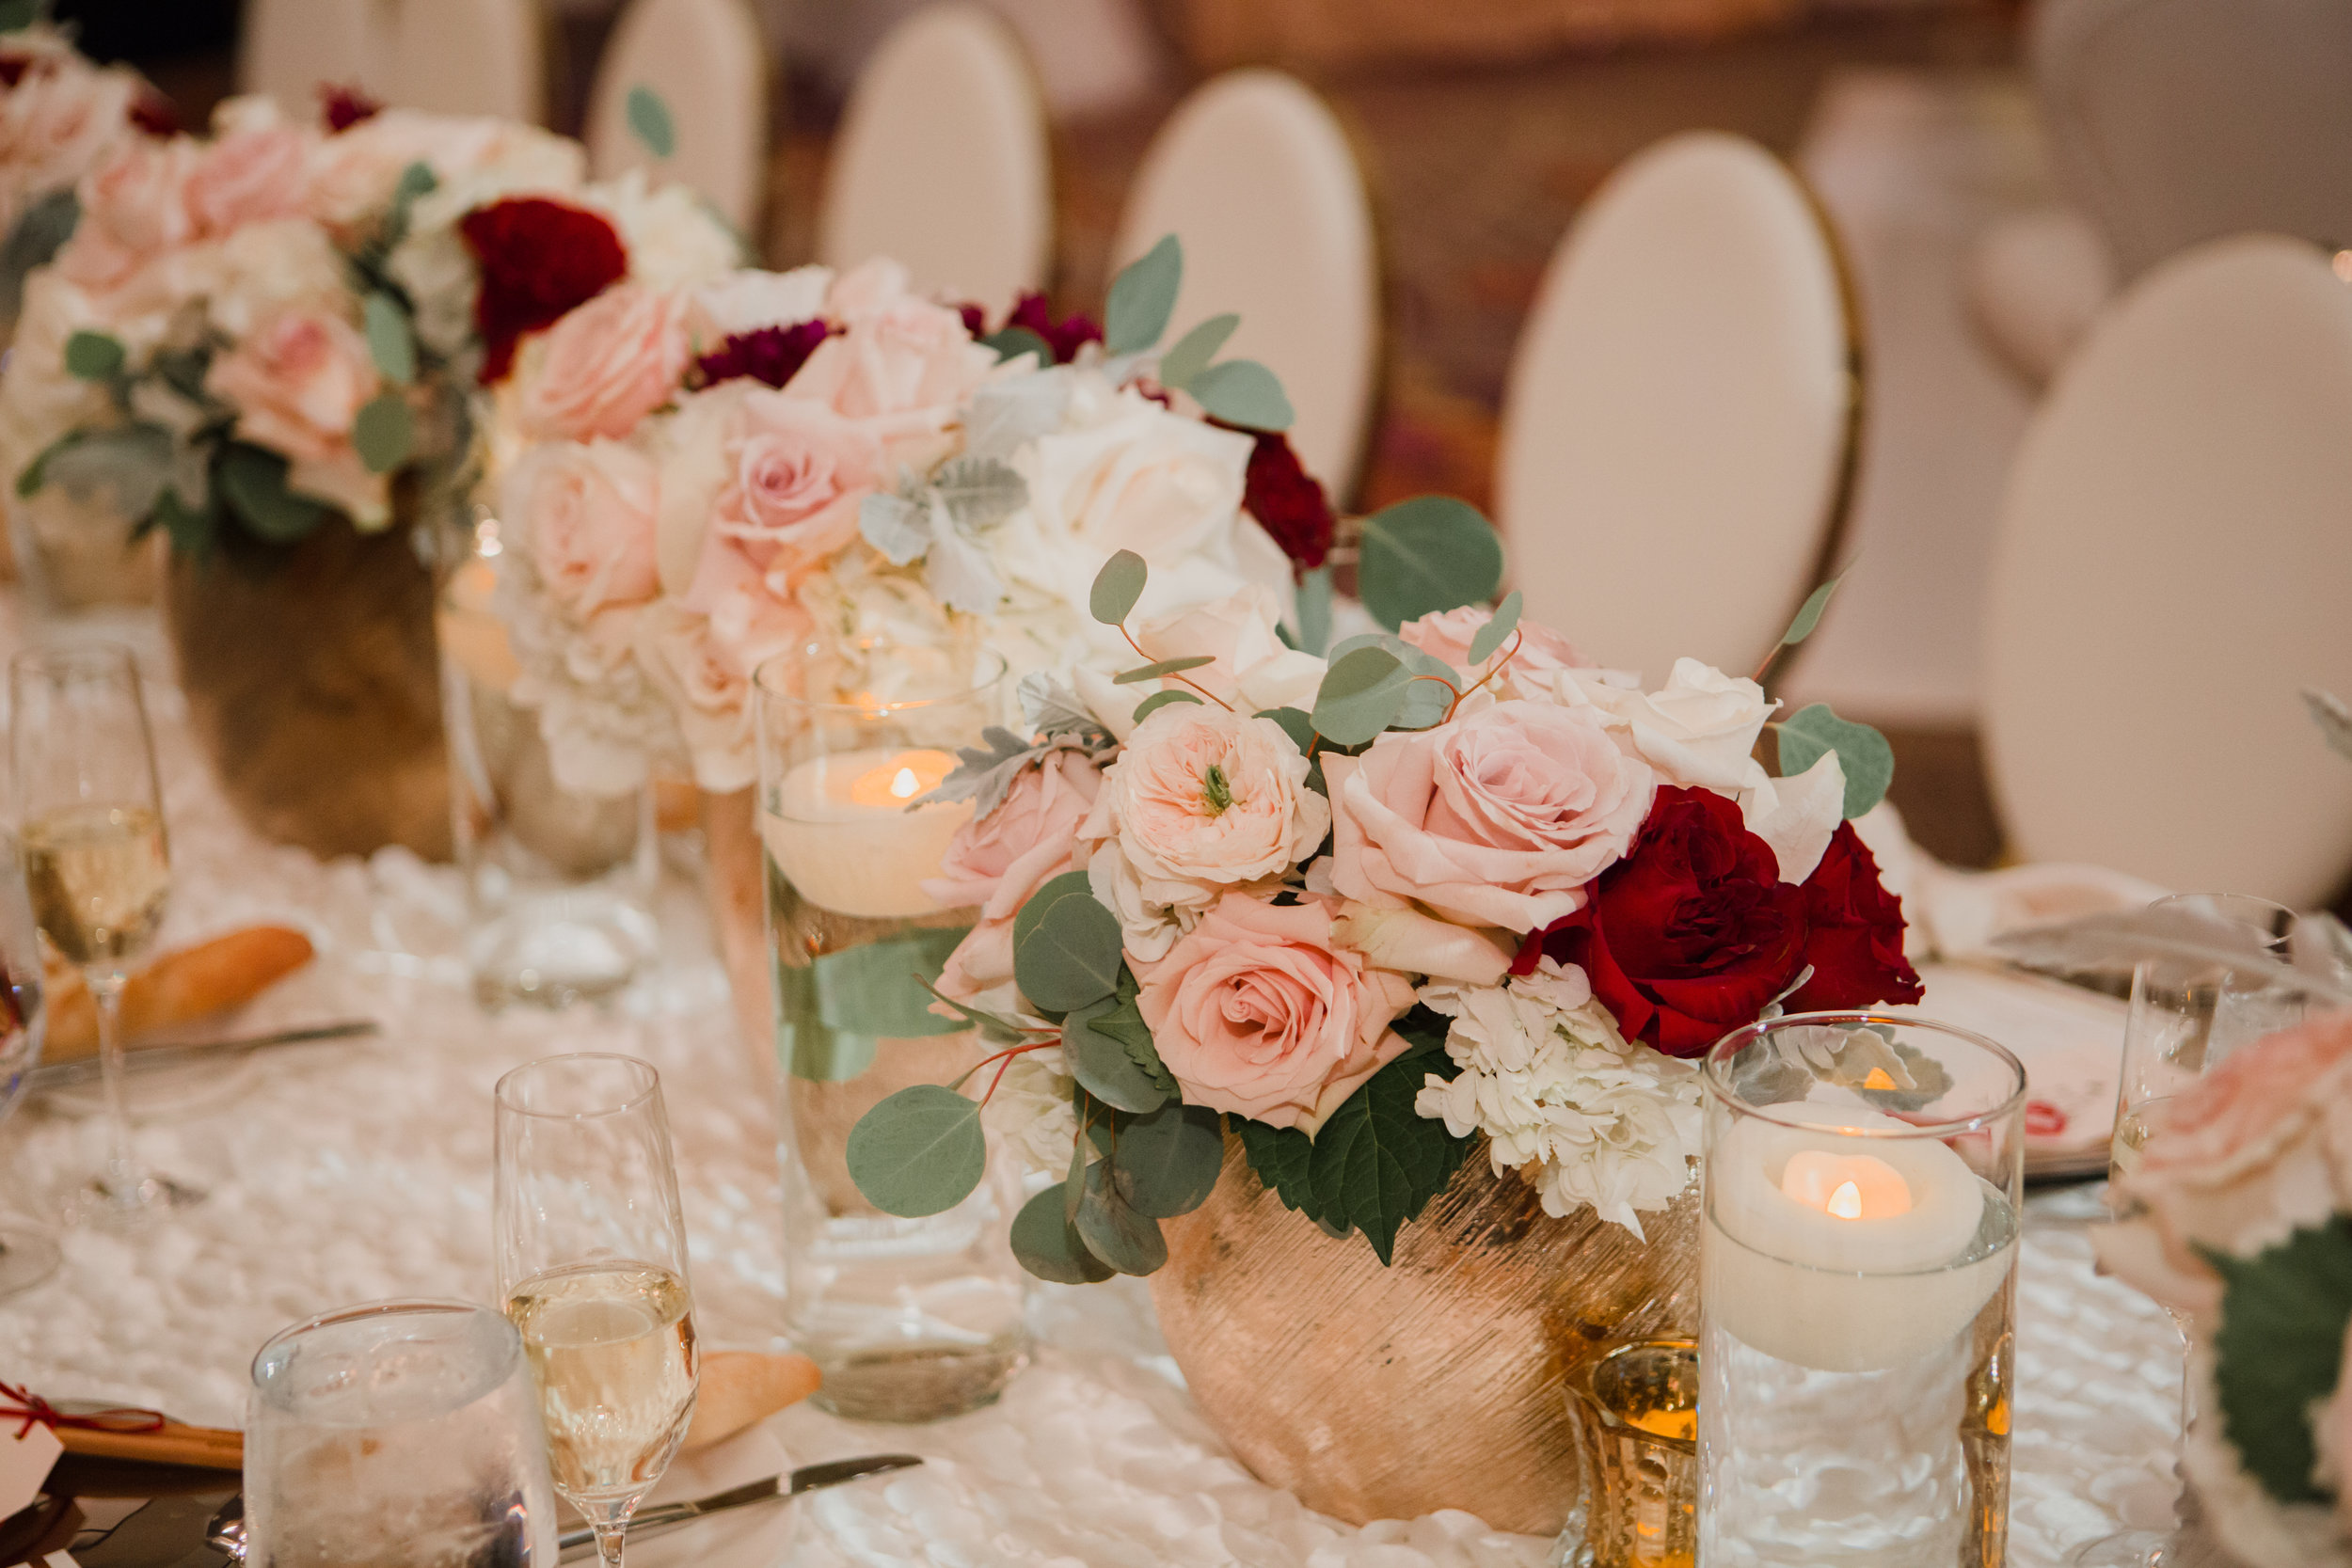 Blush roses in gold vase.Luxury wedding at the Mandarin Oriental with a color scheme of white, blush, and pops of wine red produced by Las Vegas Wedding Planner Andrea Eppolito with photos by Stephen Salazar Photography.